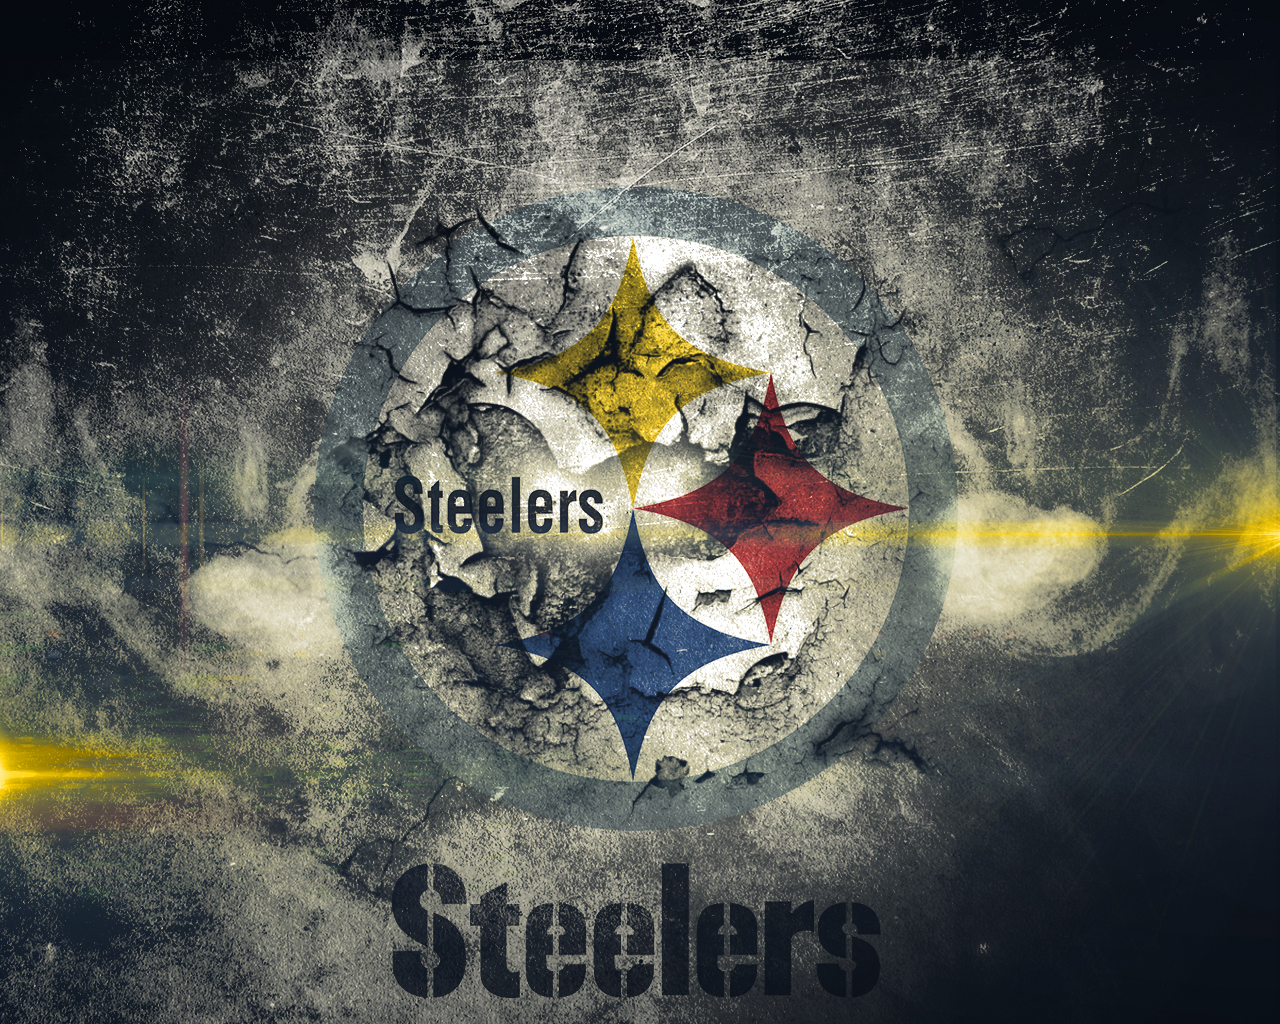 Pittsburg Steelers Wallpaper For Computer cute Wallpapers 1280x1024